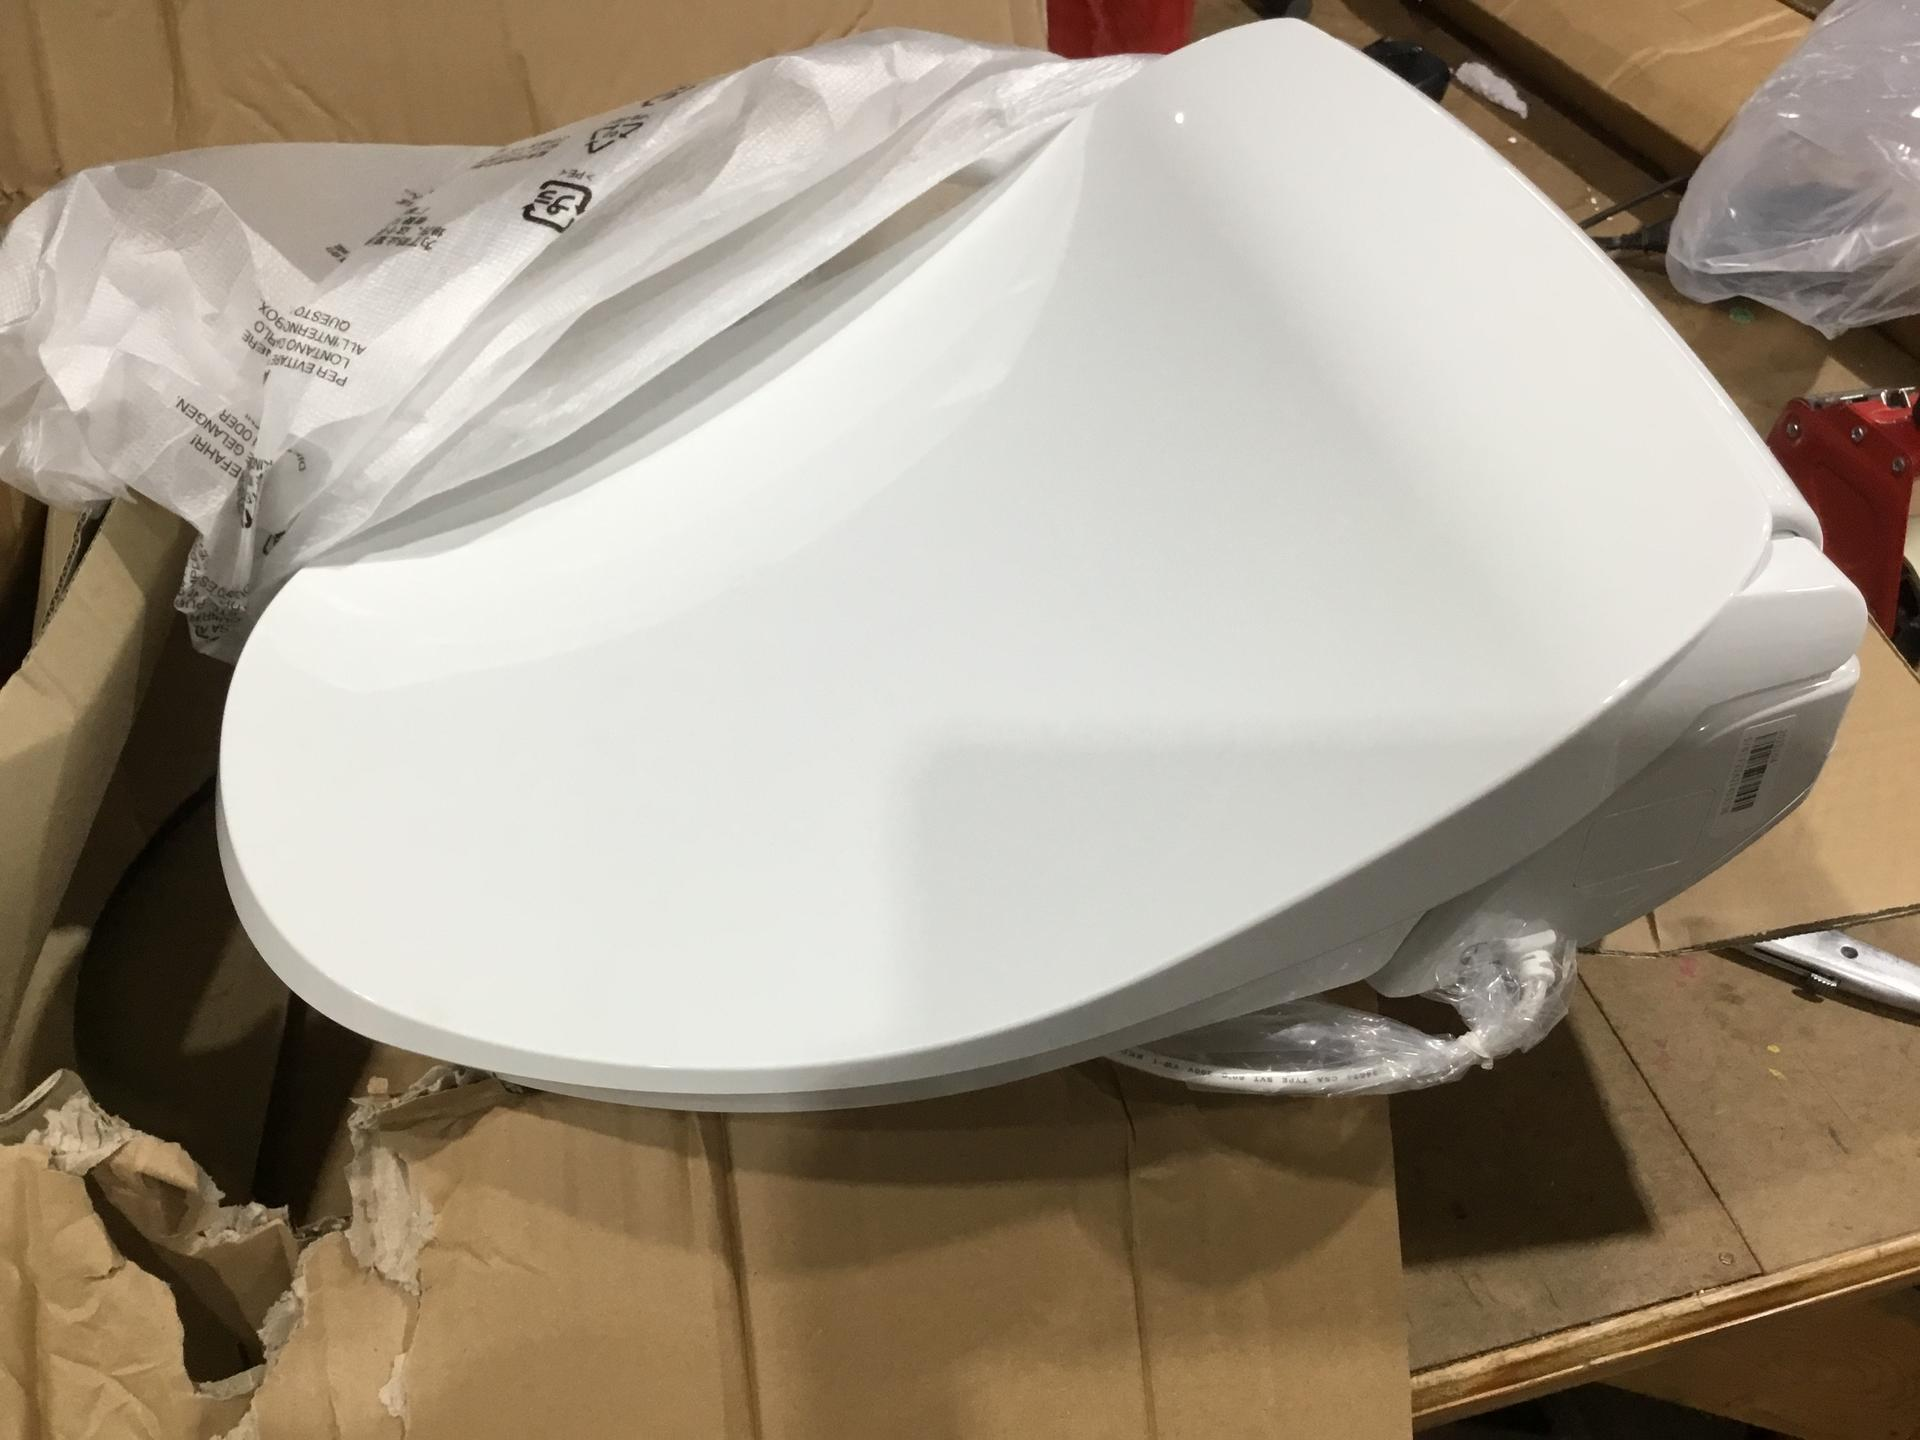 Alpha iX Hybrid Bidet Toilet Seat in Elongated White | Endless Warm Water | Stainless Steel Nozzle | 4 Wash Functions | LED Nightlight | Warm Air Dryer | Wireless Remote | Oscillation and Pulse